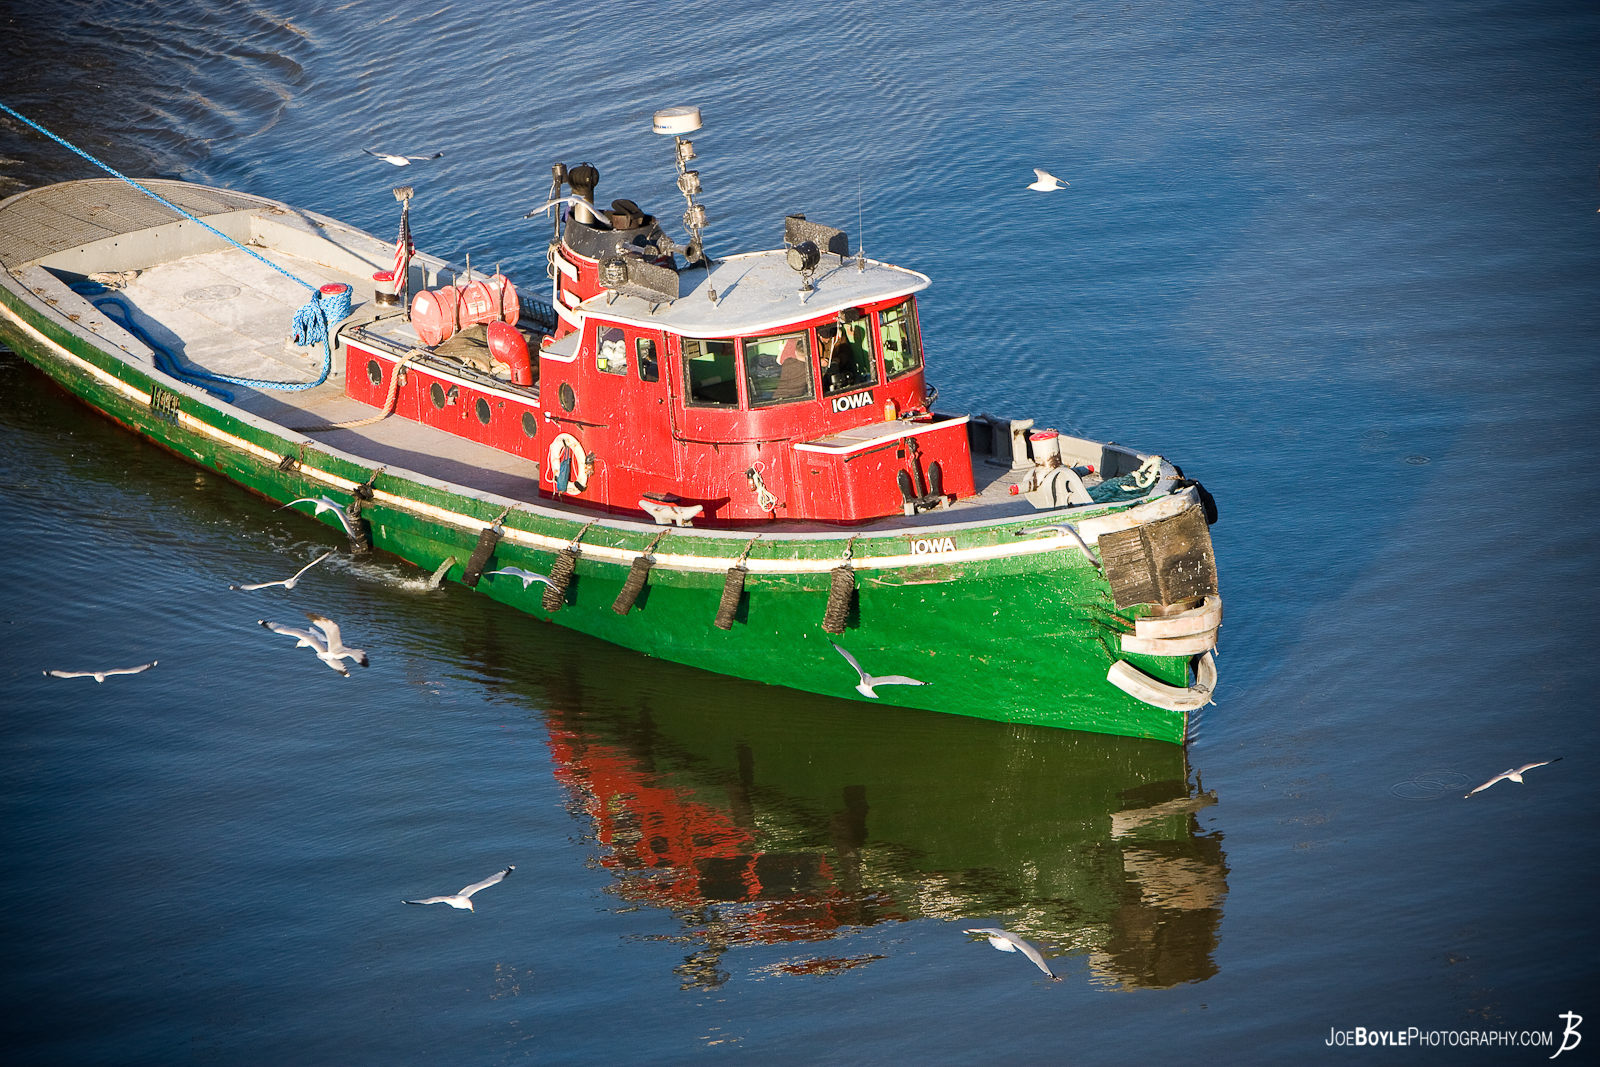 "I took this tugboat photo from the Hope Memorial Bridge. This little guy was pulling a huge boat behind him - naturally. I like to call this picture ""Merry Christmas Tugboat"" for it's bright red and green colors."